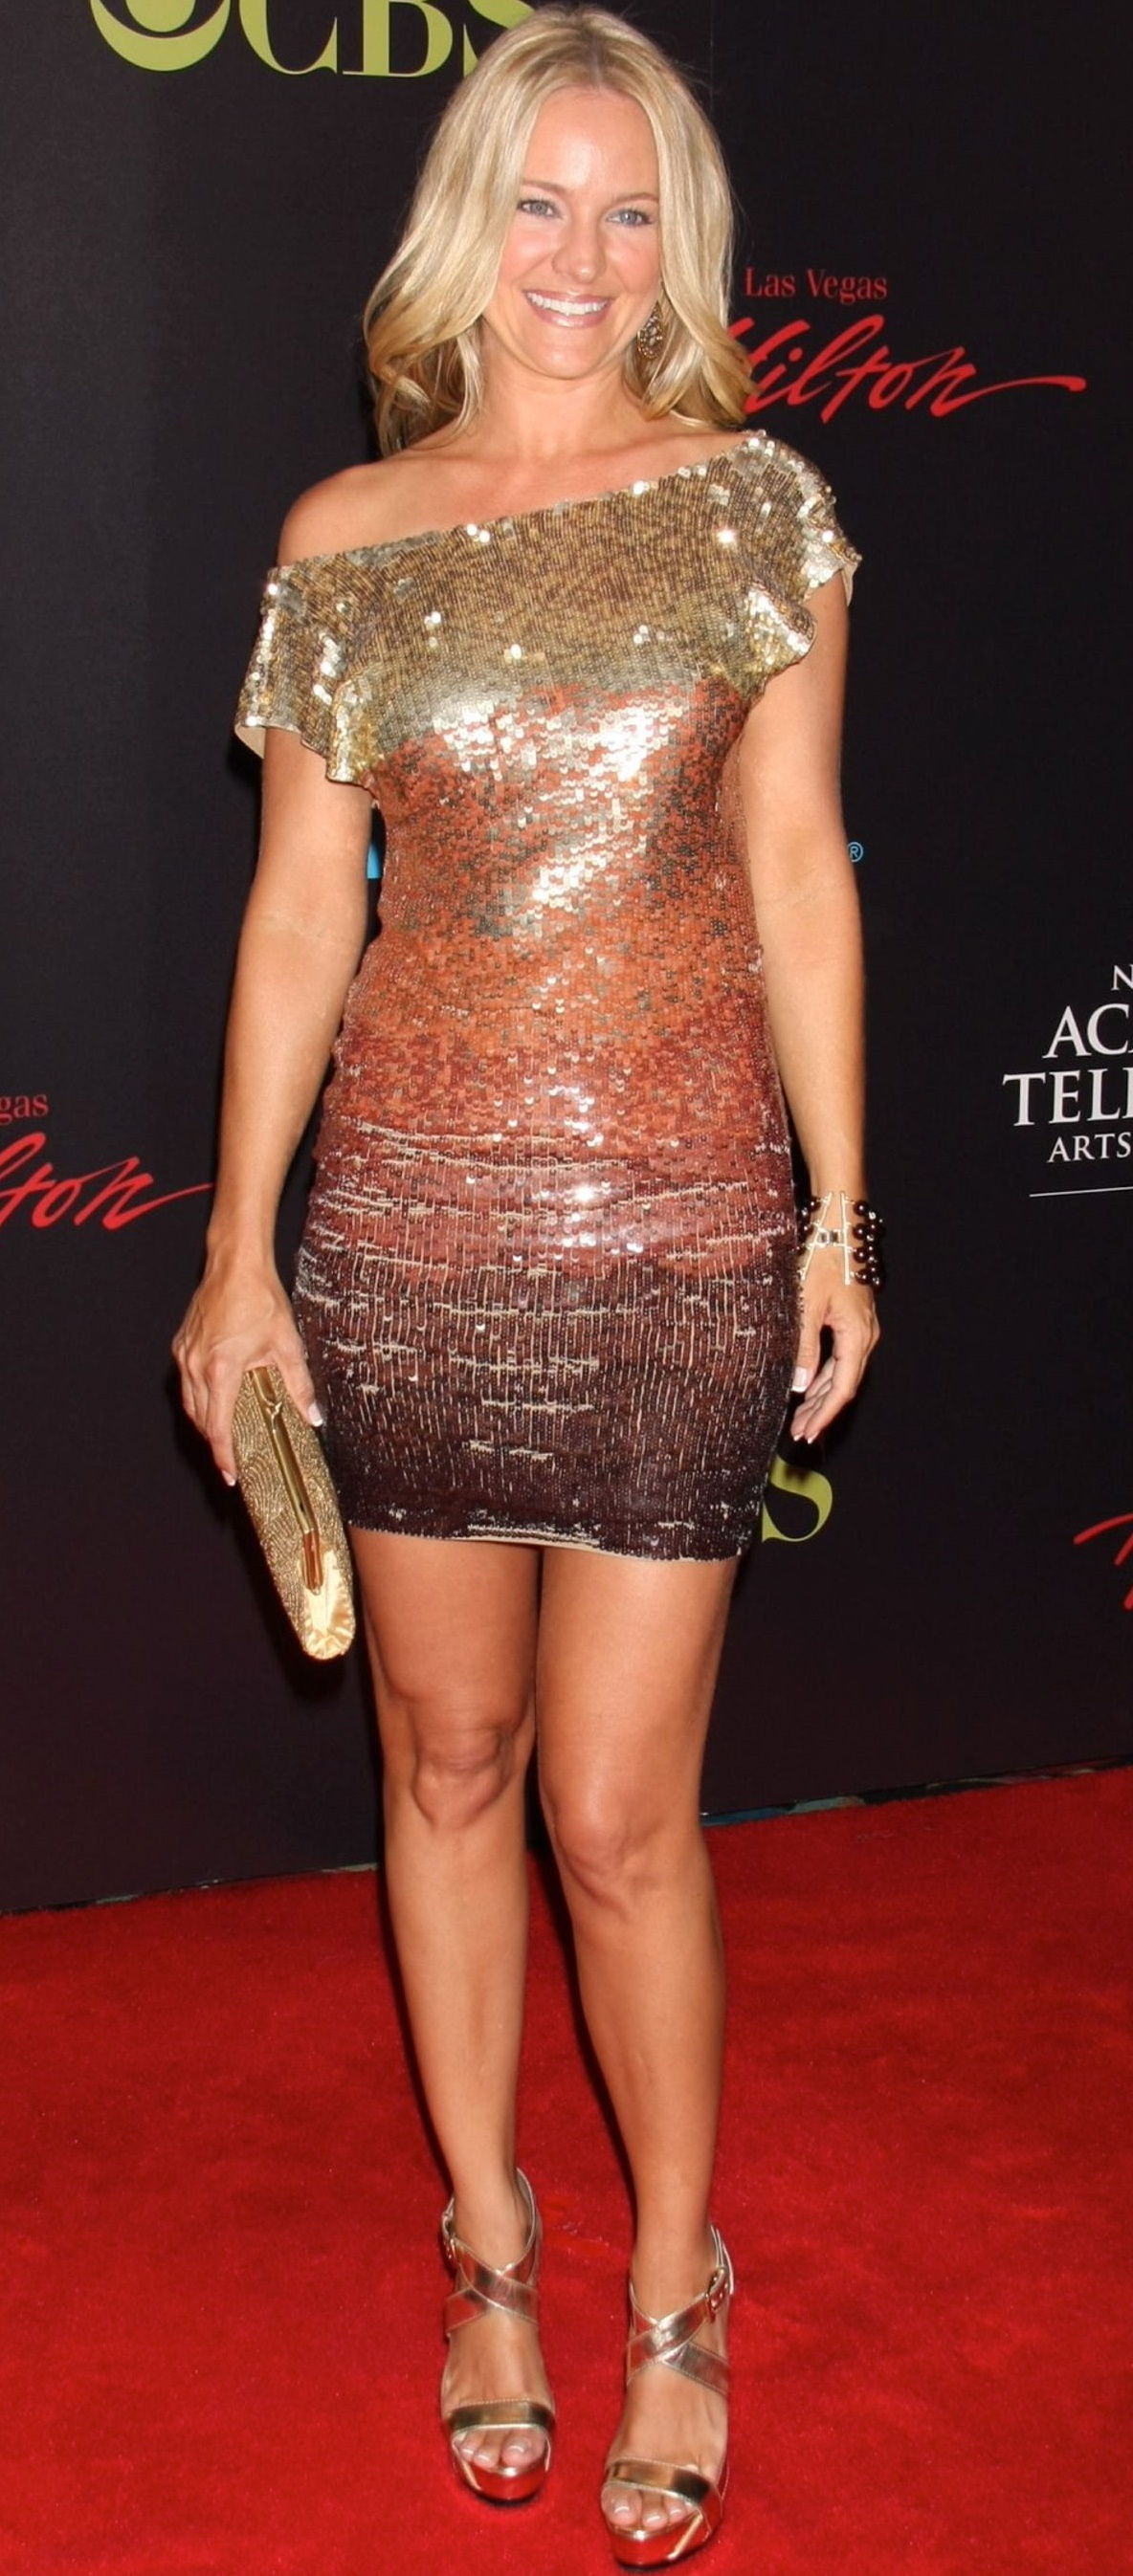 Sharon Case 37th Annual Daytime Emmy Awards - Arrivals Las Vegas Hilton Las Vegas 6/27/10